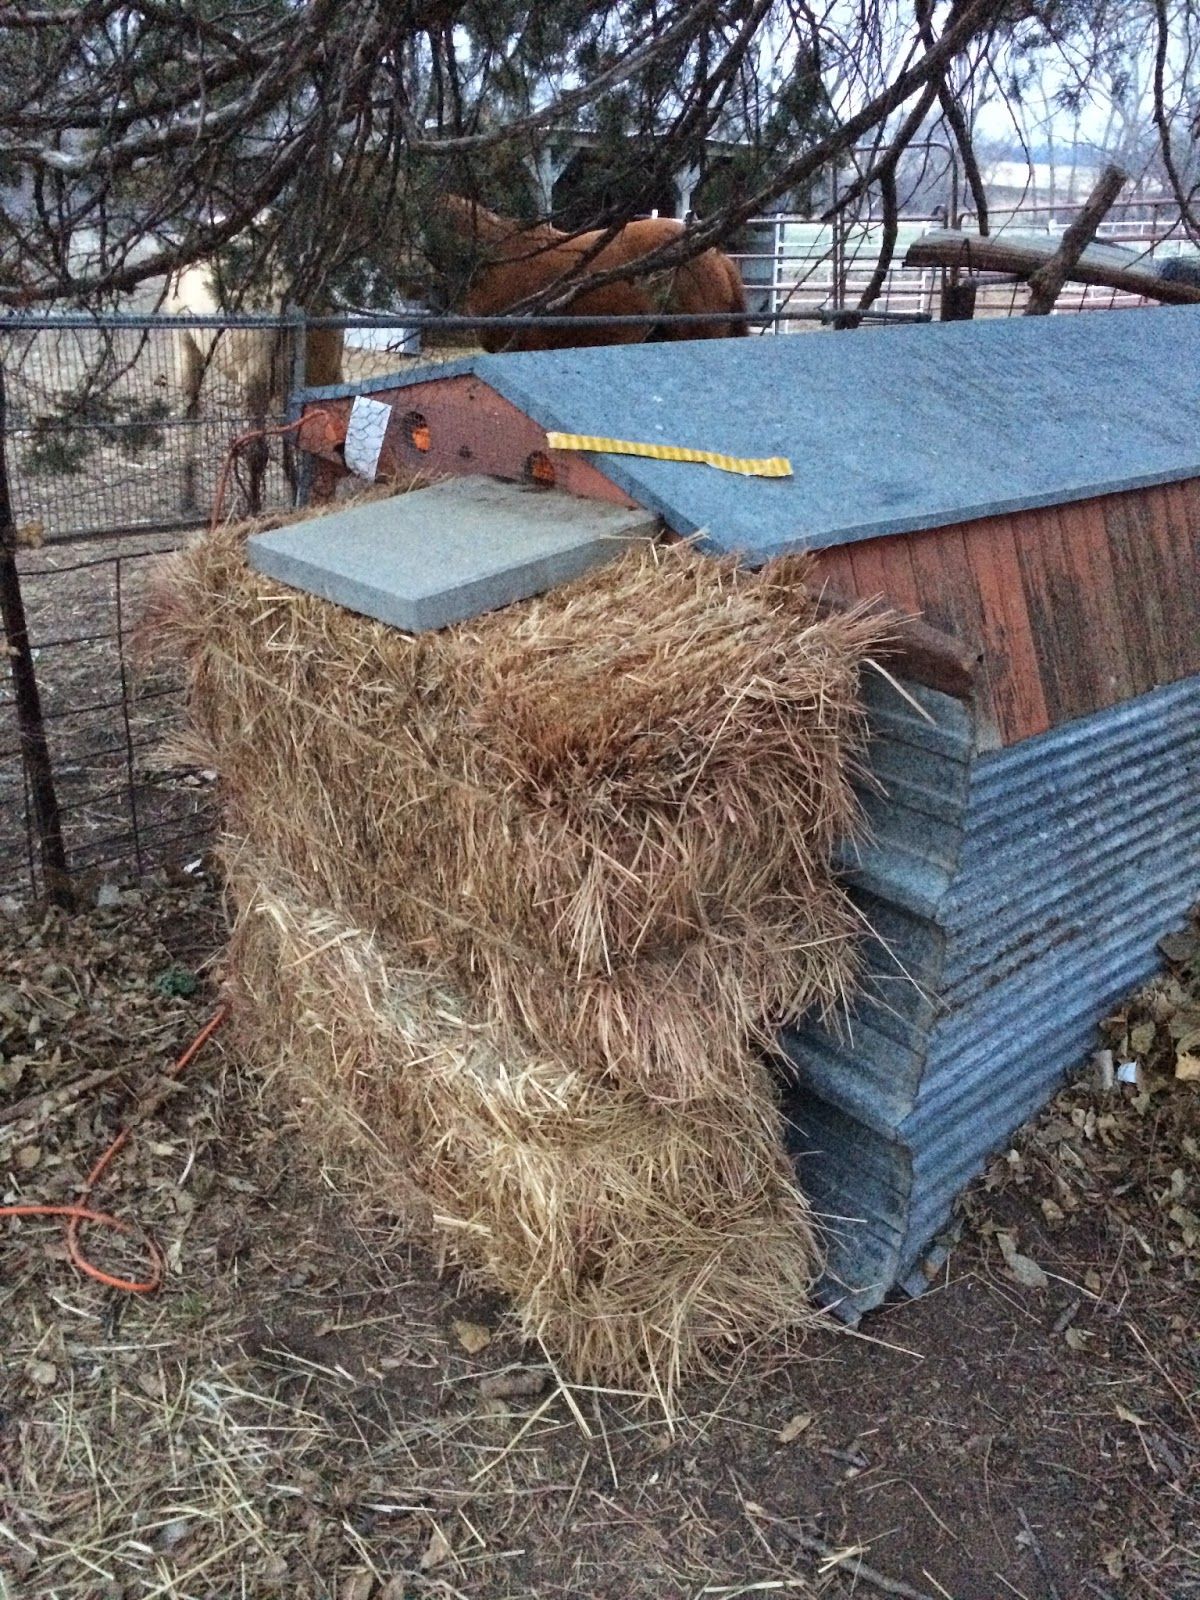 Our chicken coop which I hope is impenetrable